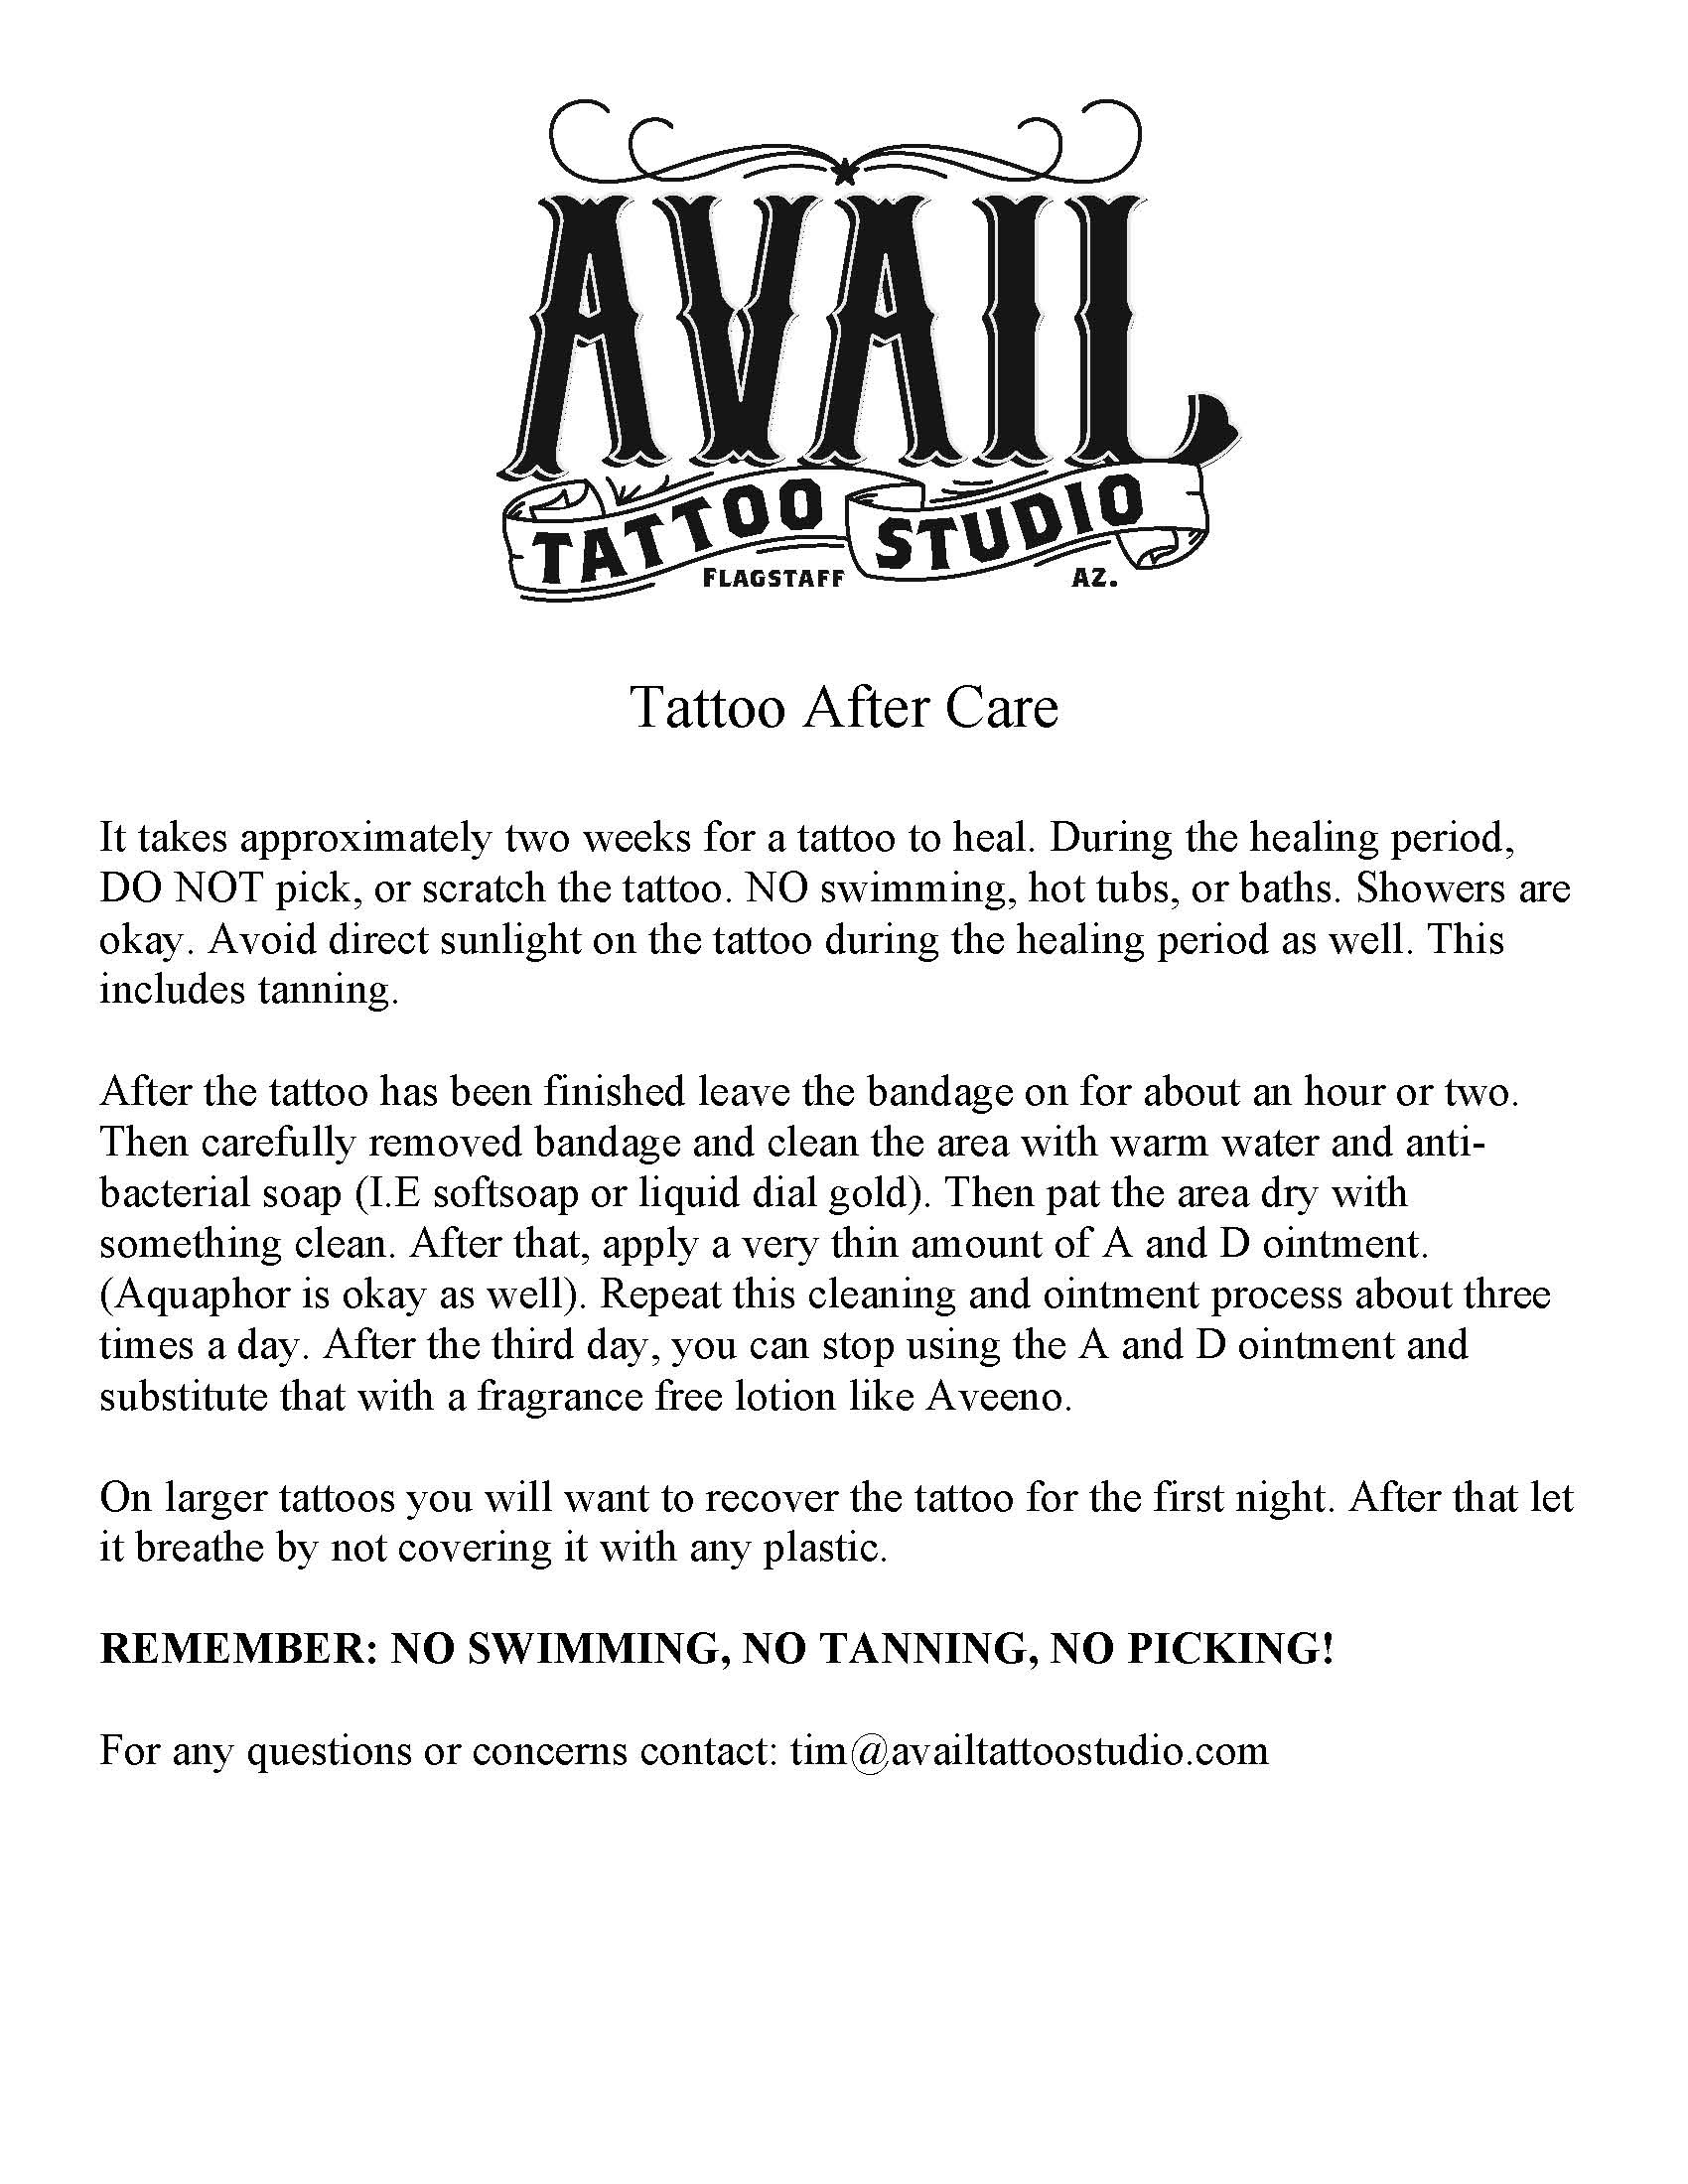 Tattoo aftercare instructions Images - HD Tattoo Design Ideas